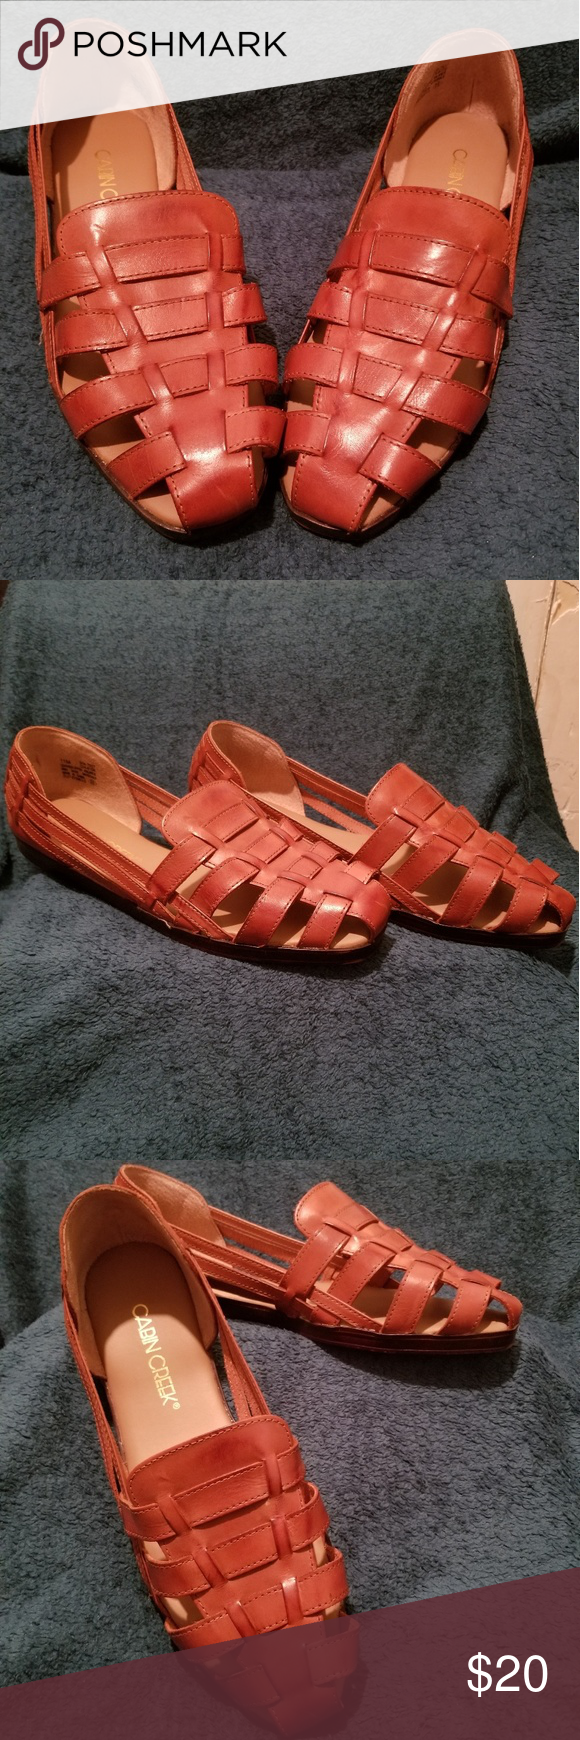 f29018e1a529 Cabin Creek Sandals Tan Weave Pattern Rarely Worn Minor Blemishes Cabin  Creek Shoes Sandals